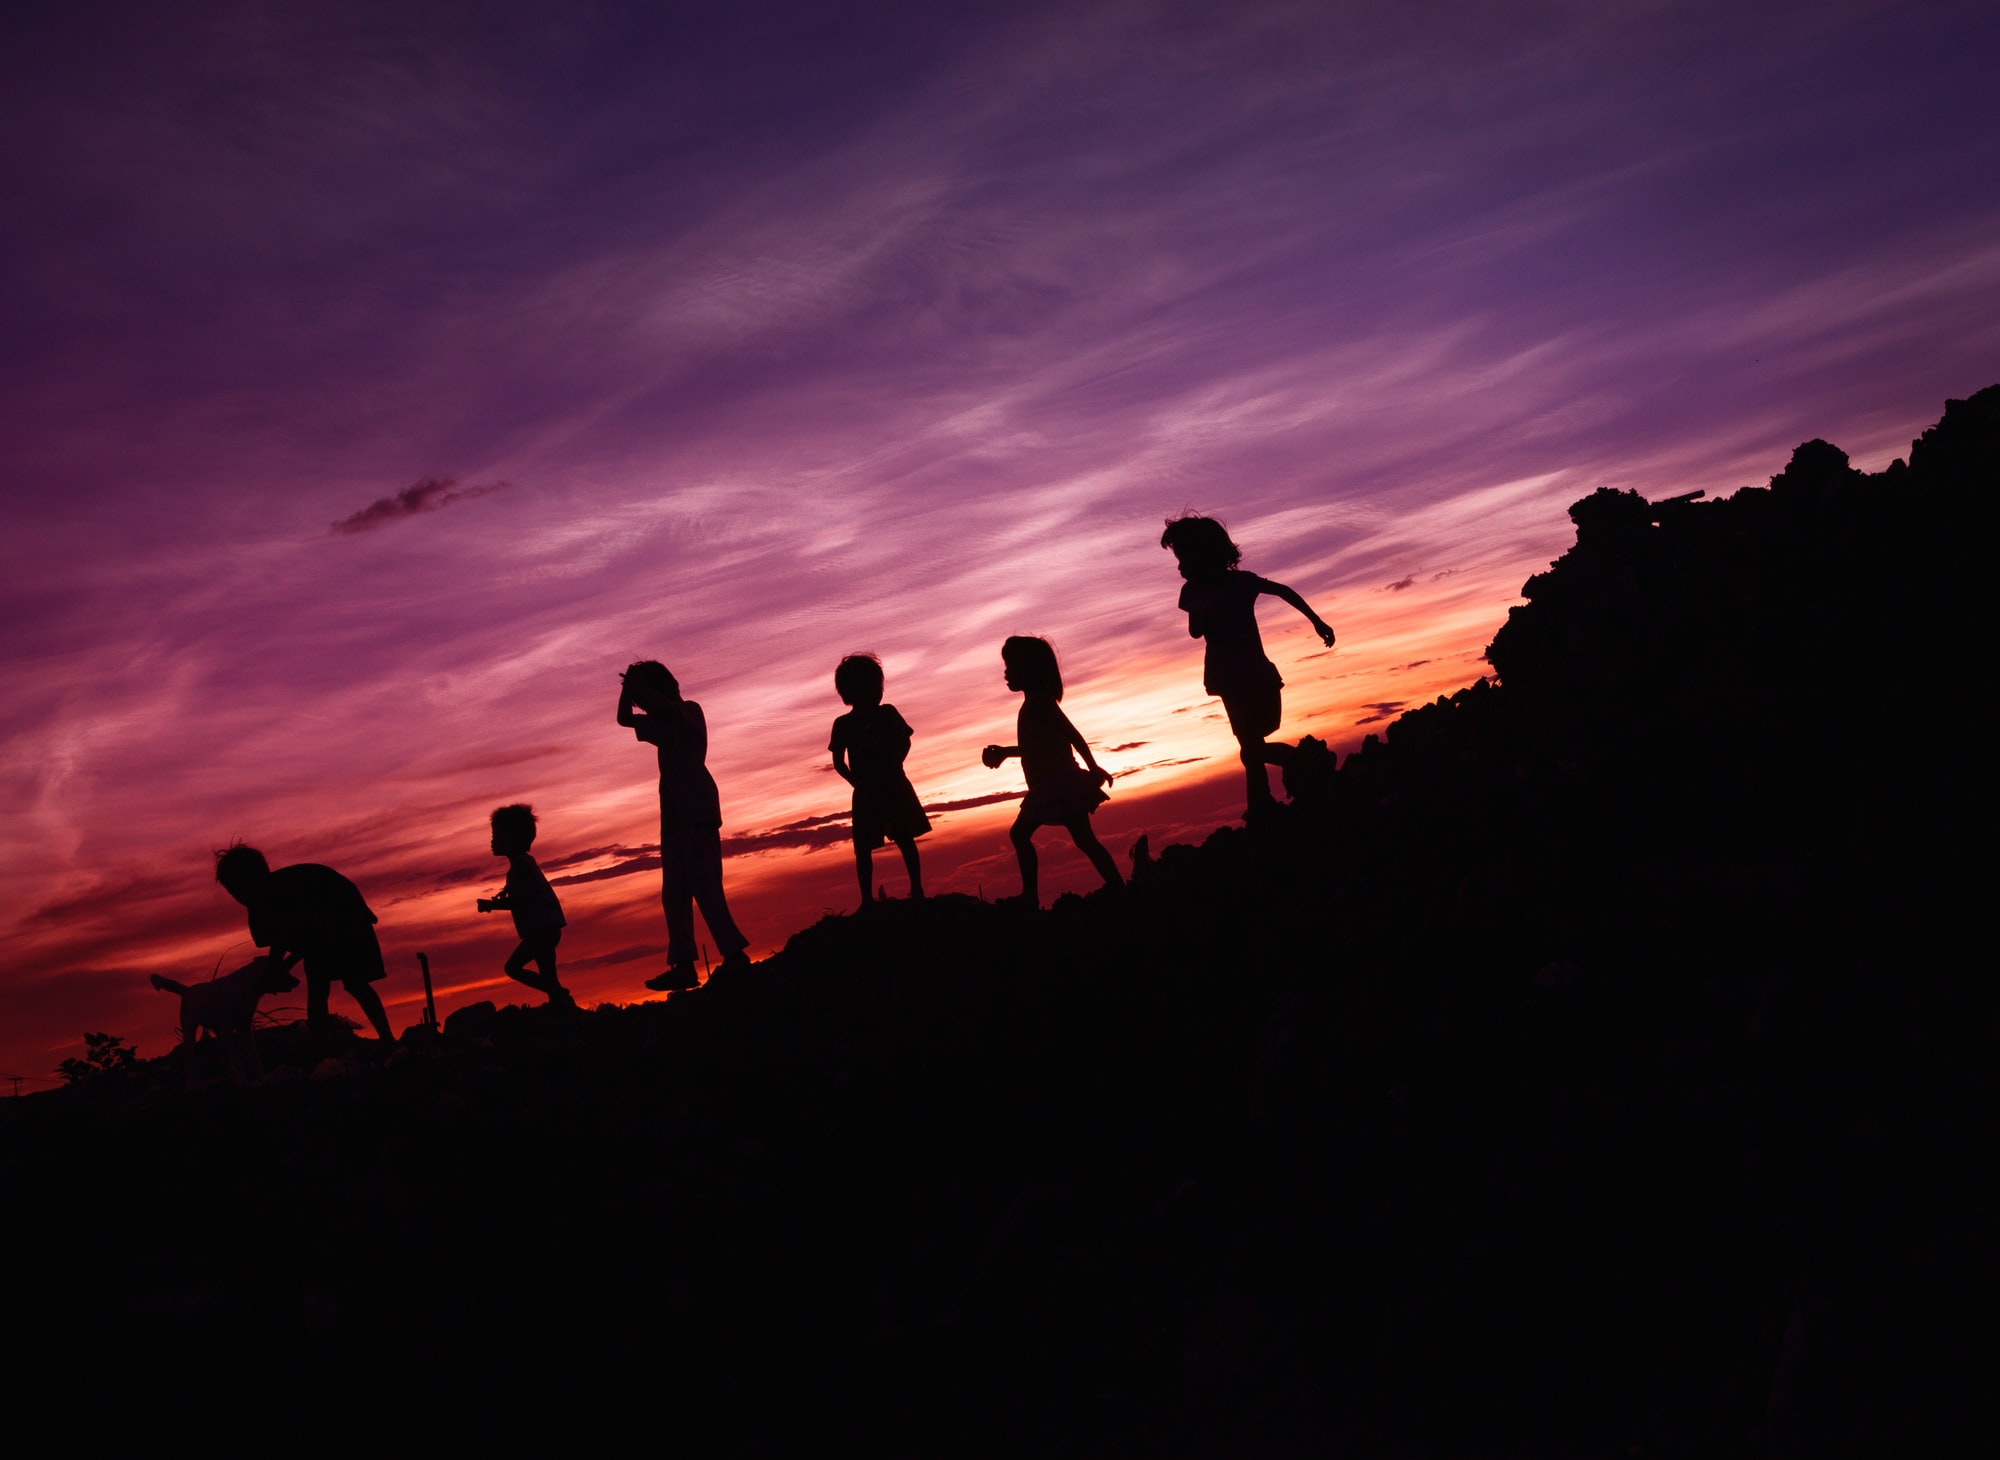 Kids playing with their dog during sunset.